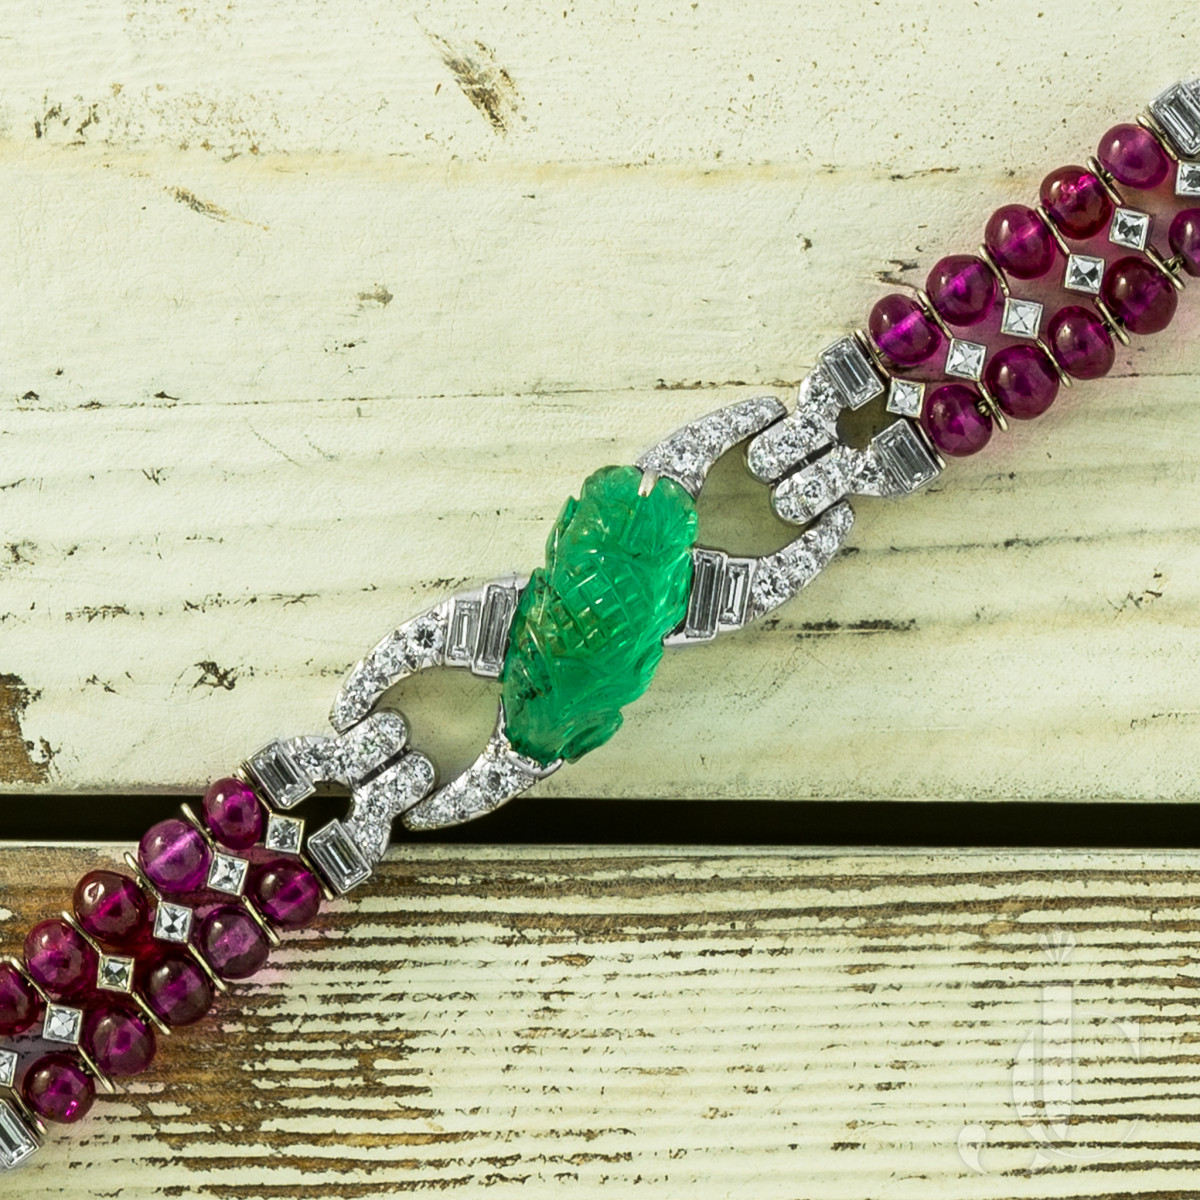 Art Deco Tutti Frutti Bracelet with Carved Emeralds, Rubies and Diamonds